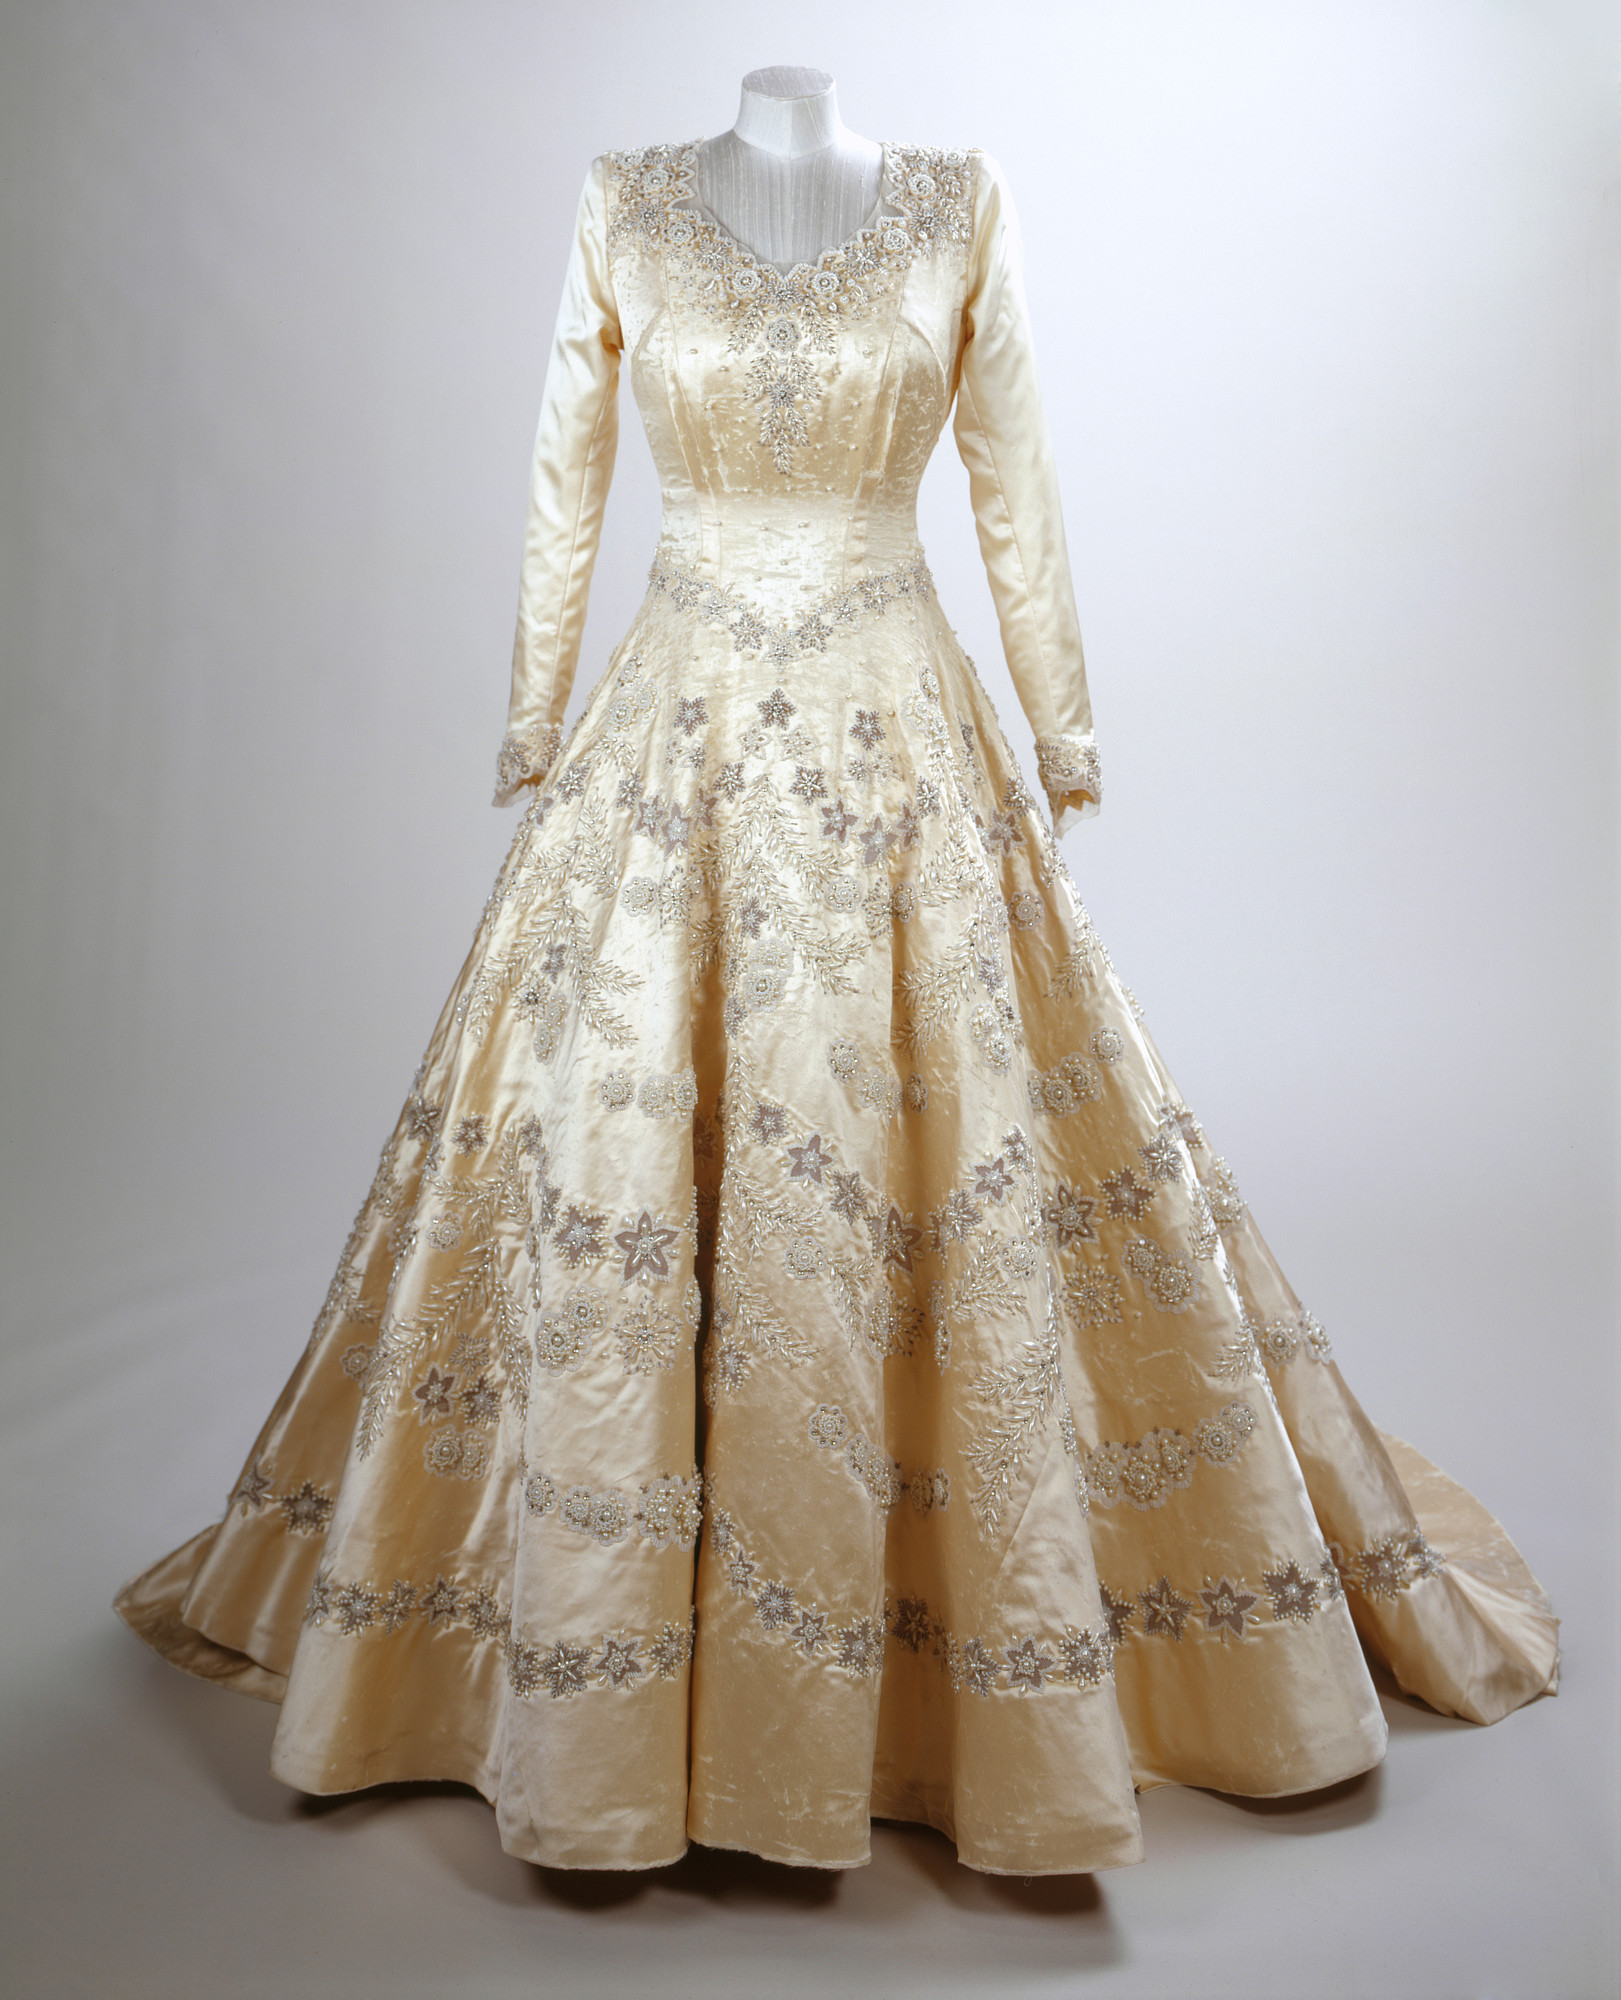 The Queens Wedding and Coronation dresses